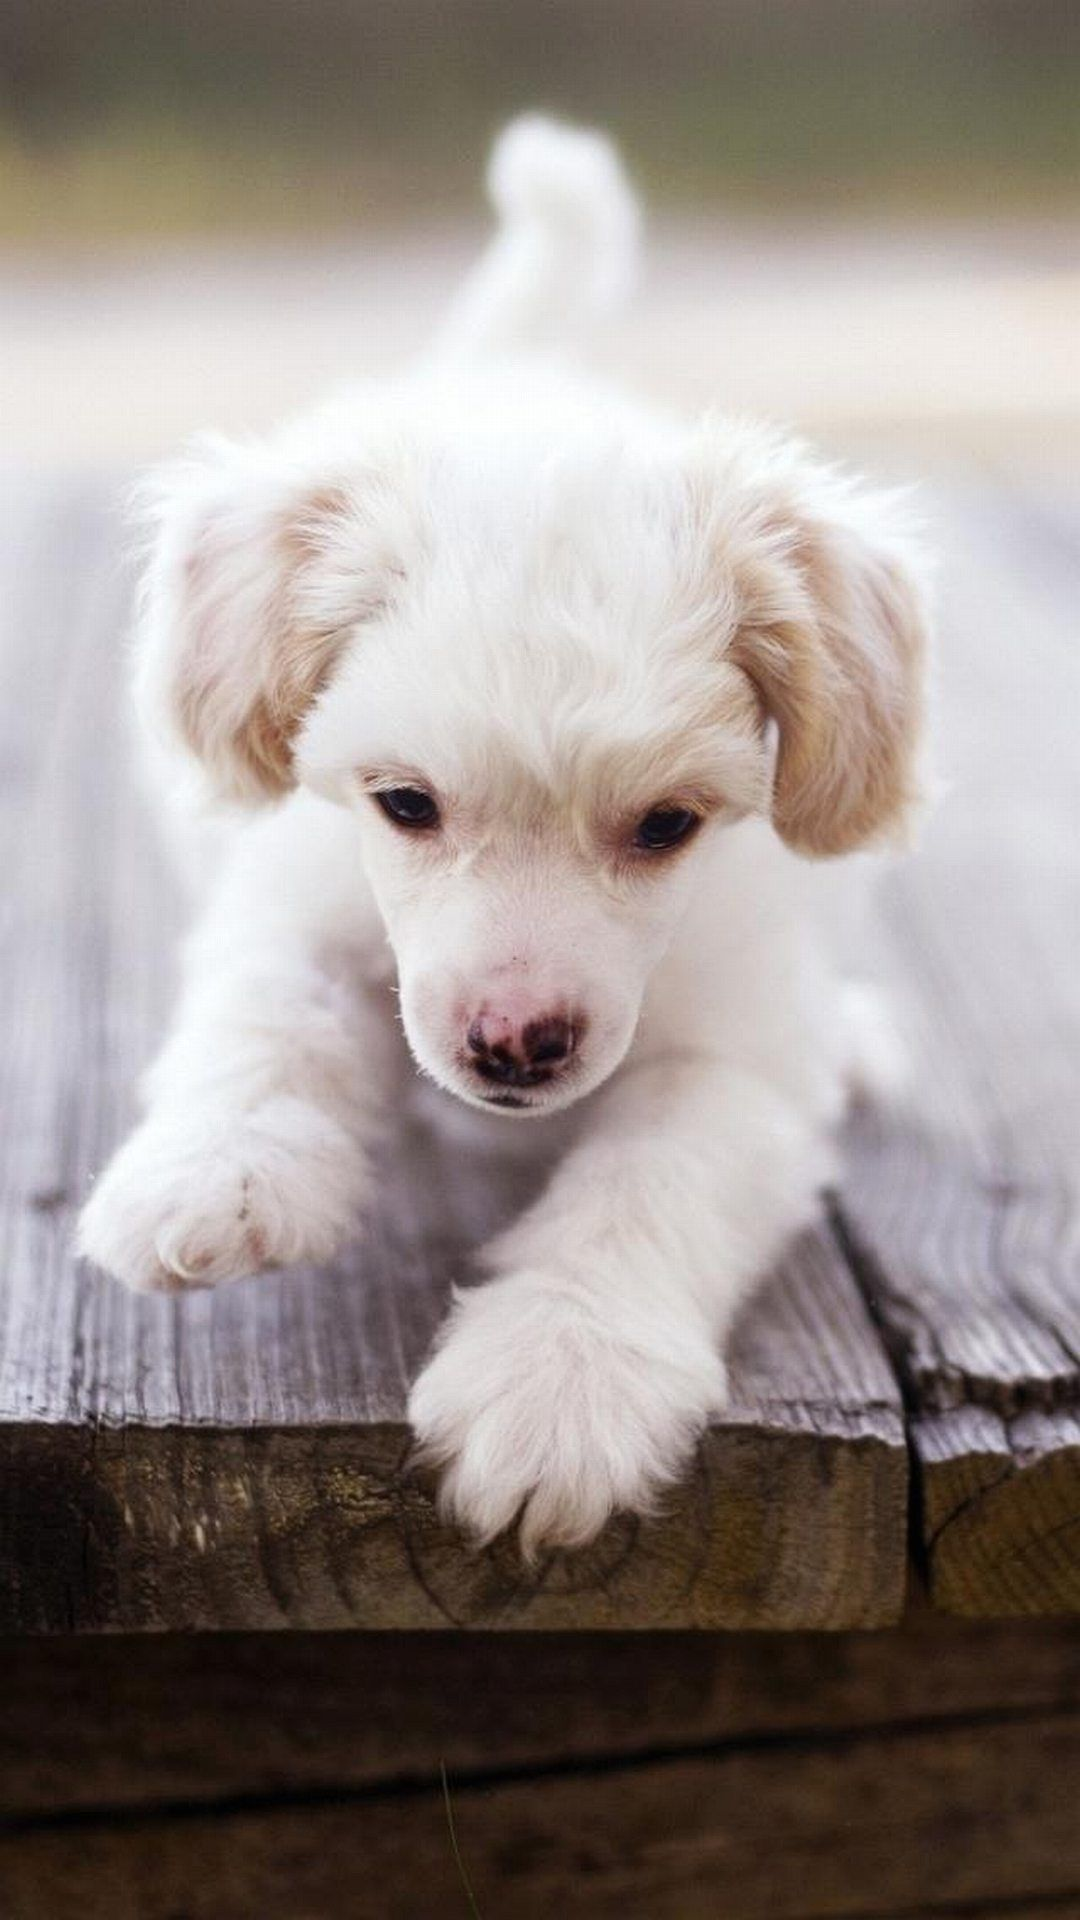 Puppy Dog Cute Puppies Wallpapers For Iphone Animals Phone